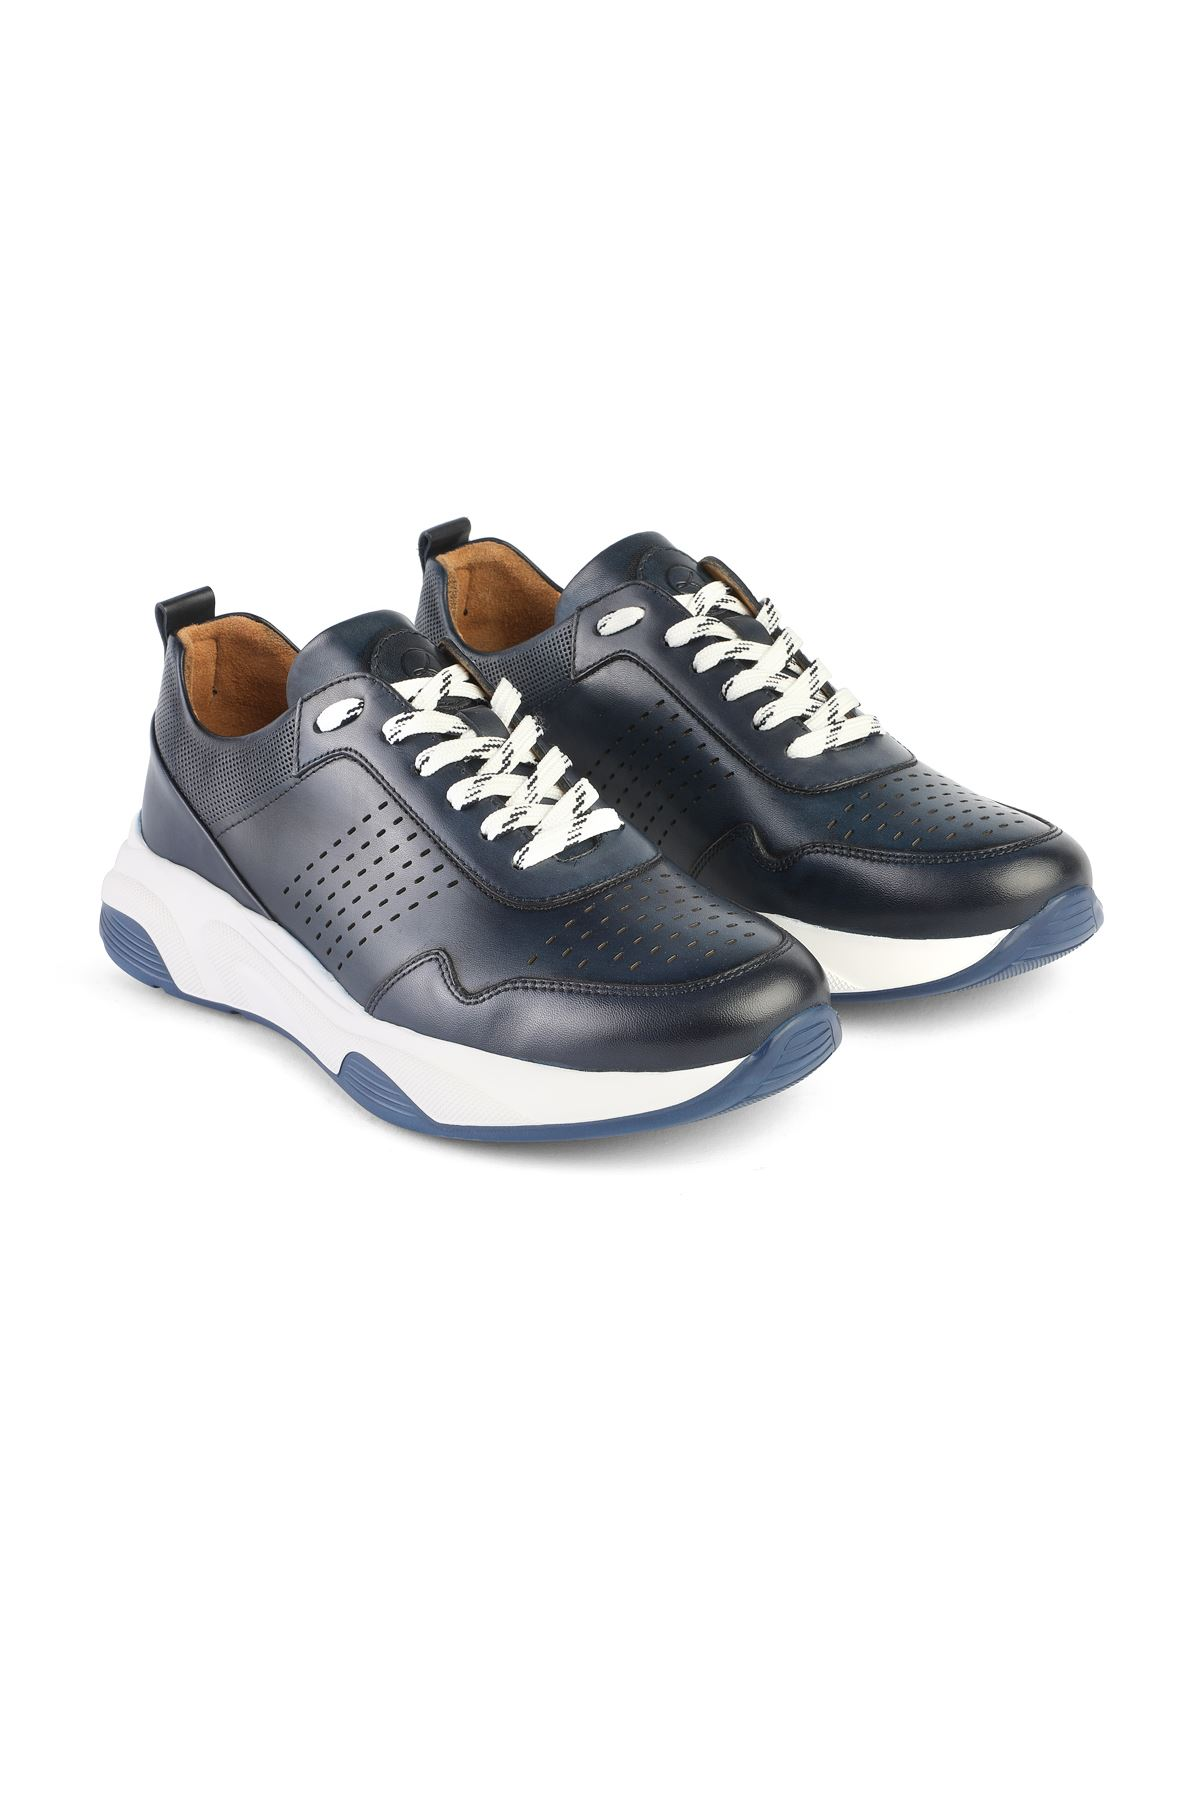 Libero 3313 Navy Blue Sport Shoes